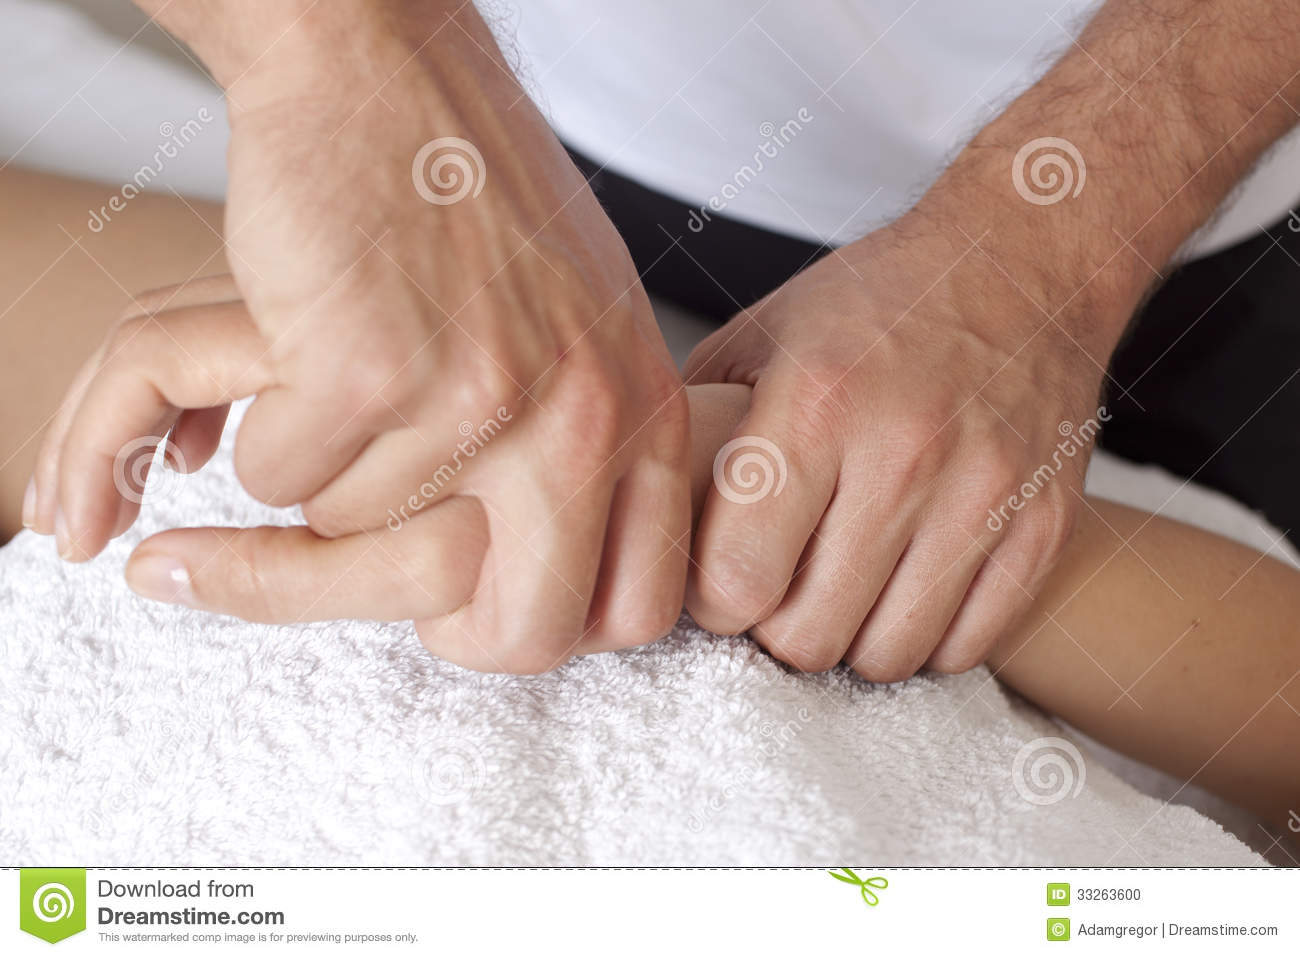 How to give a massage give a hand massage to a client